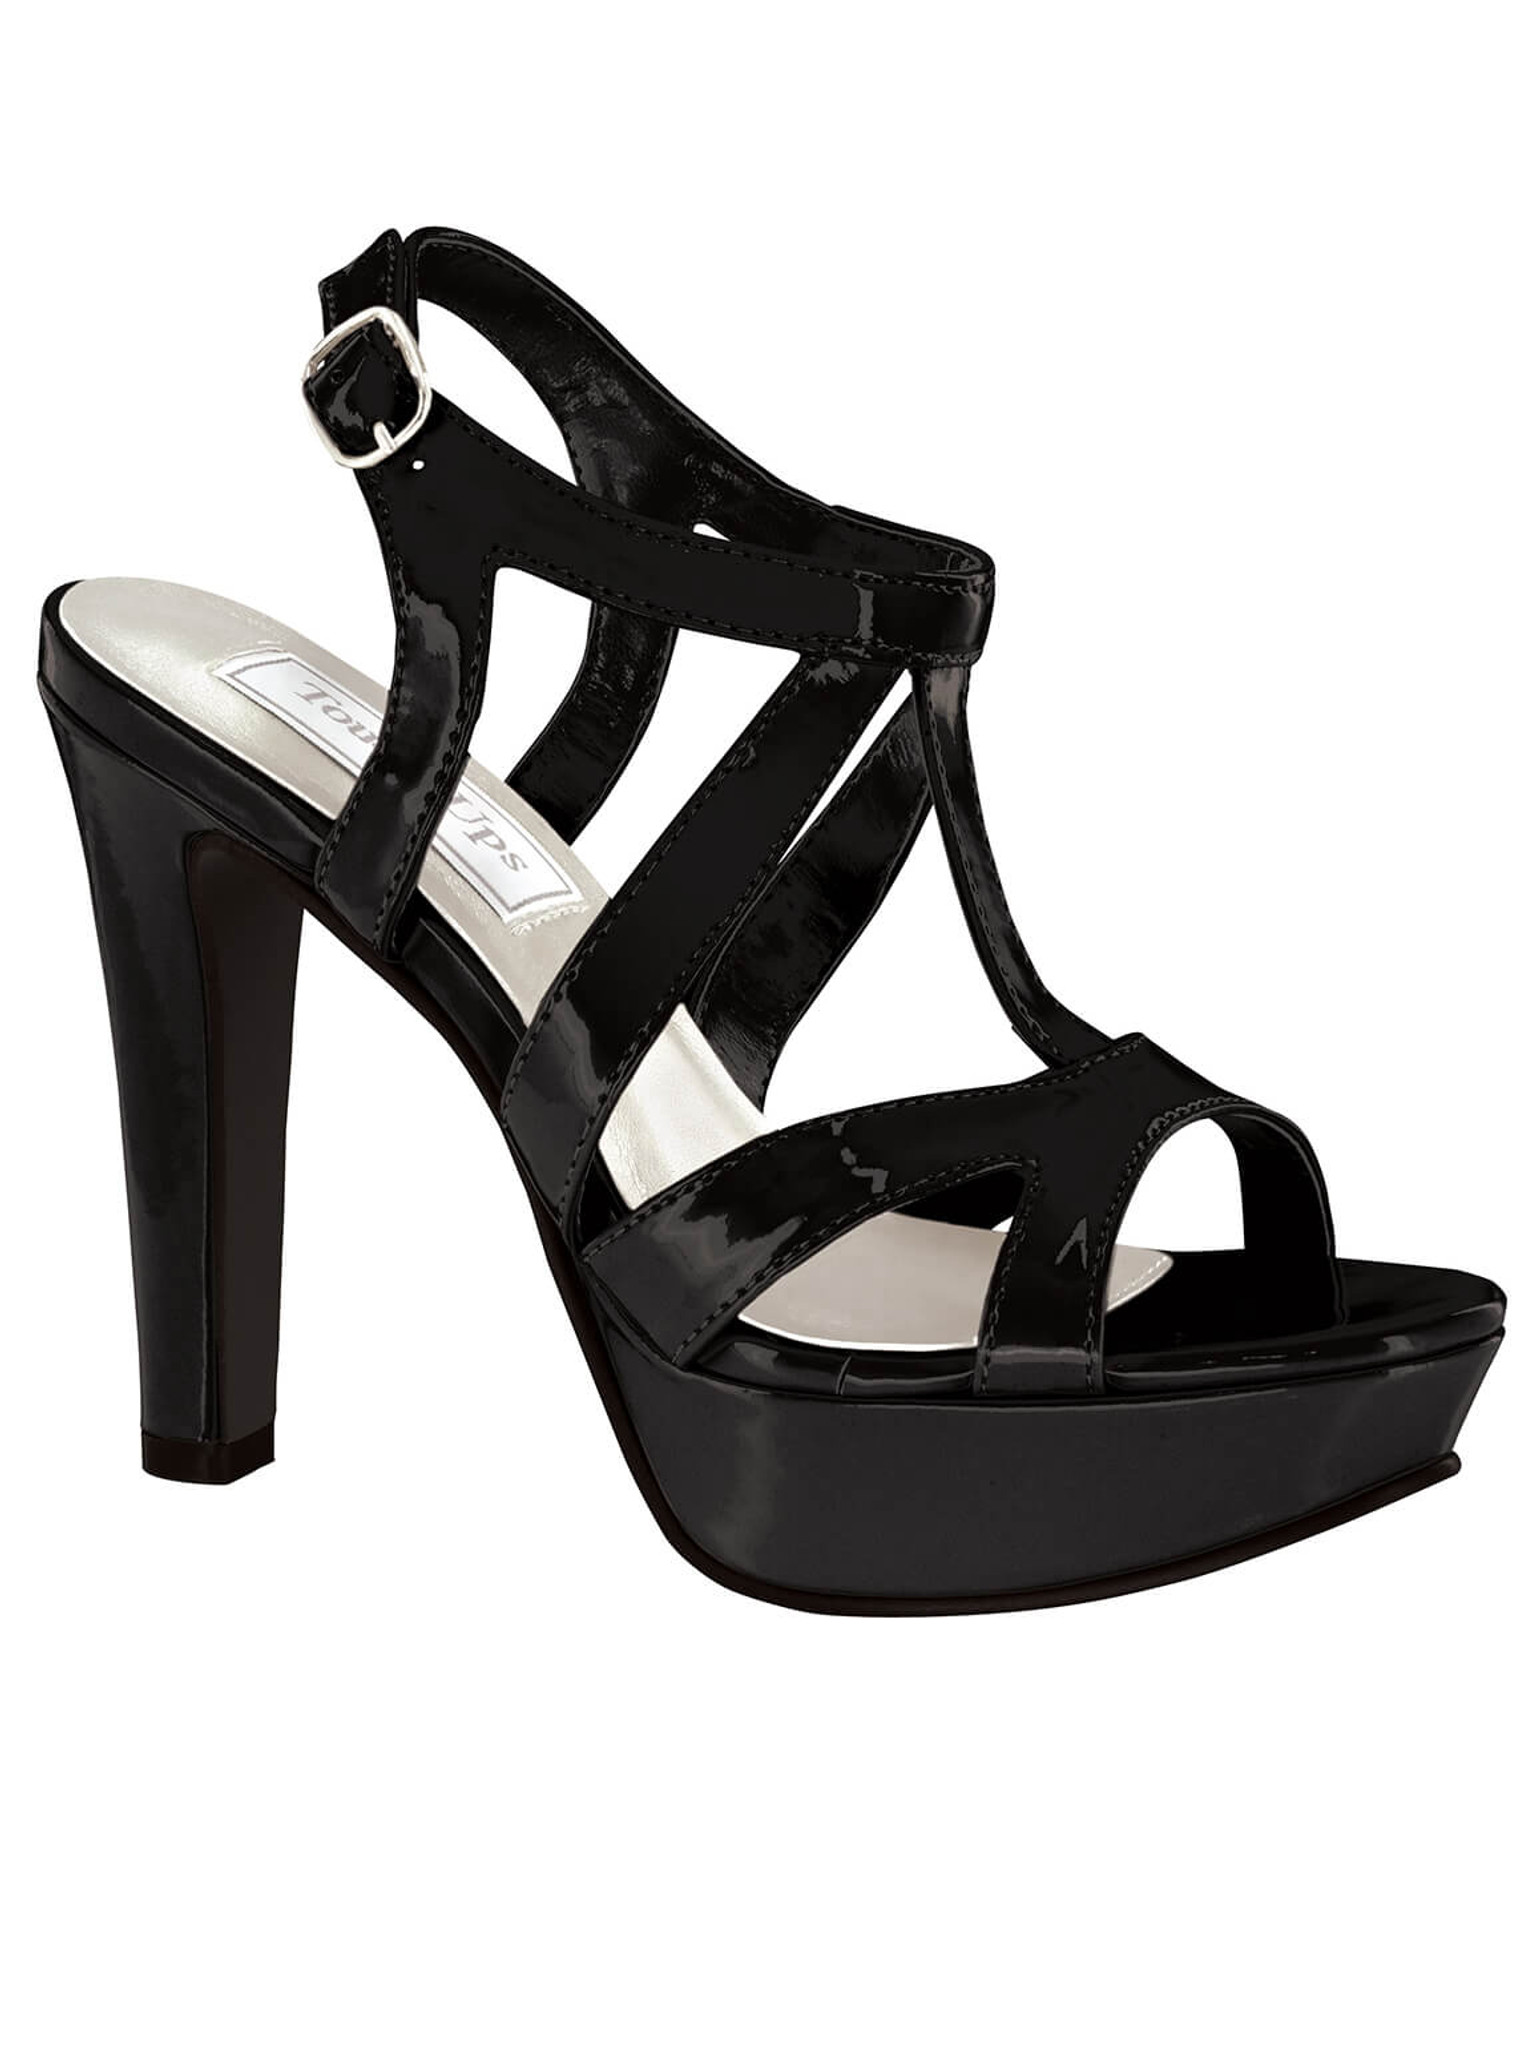 Black platform sandal shoes by touch ups queenie